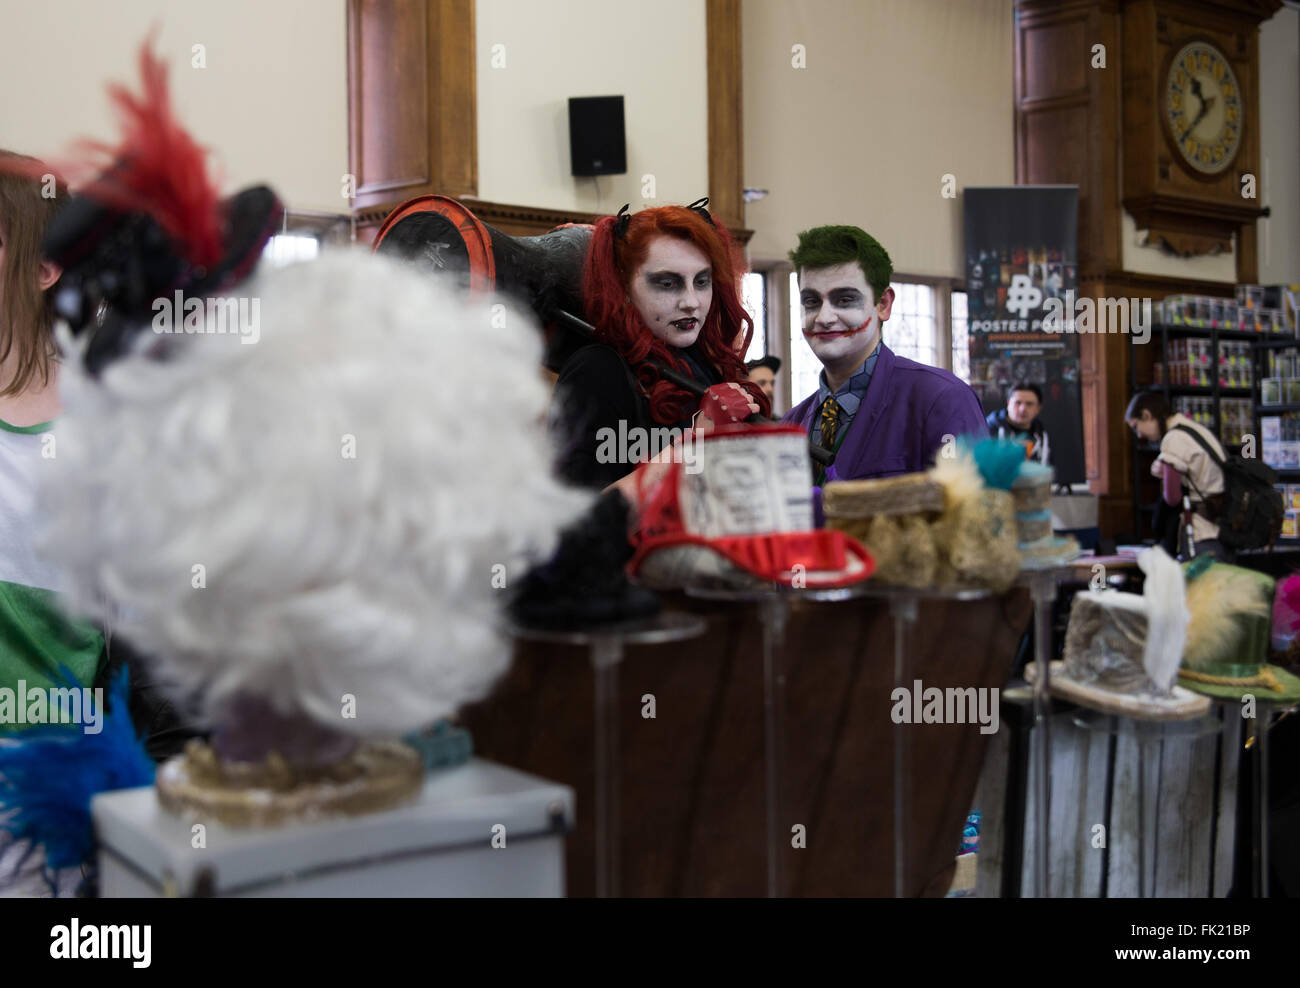 Oxford, UK. 5th March, 2016. One of the exhibit during  First Comic Con held  Oxford. Credit: Pete Lusabia/Alamy - Stock Image